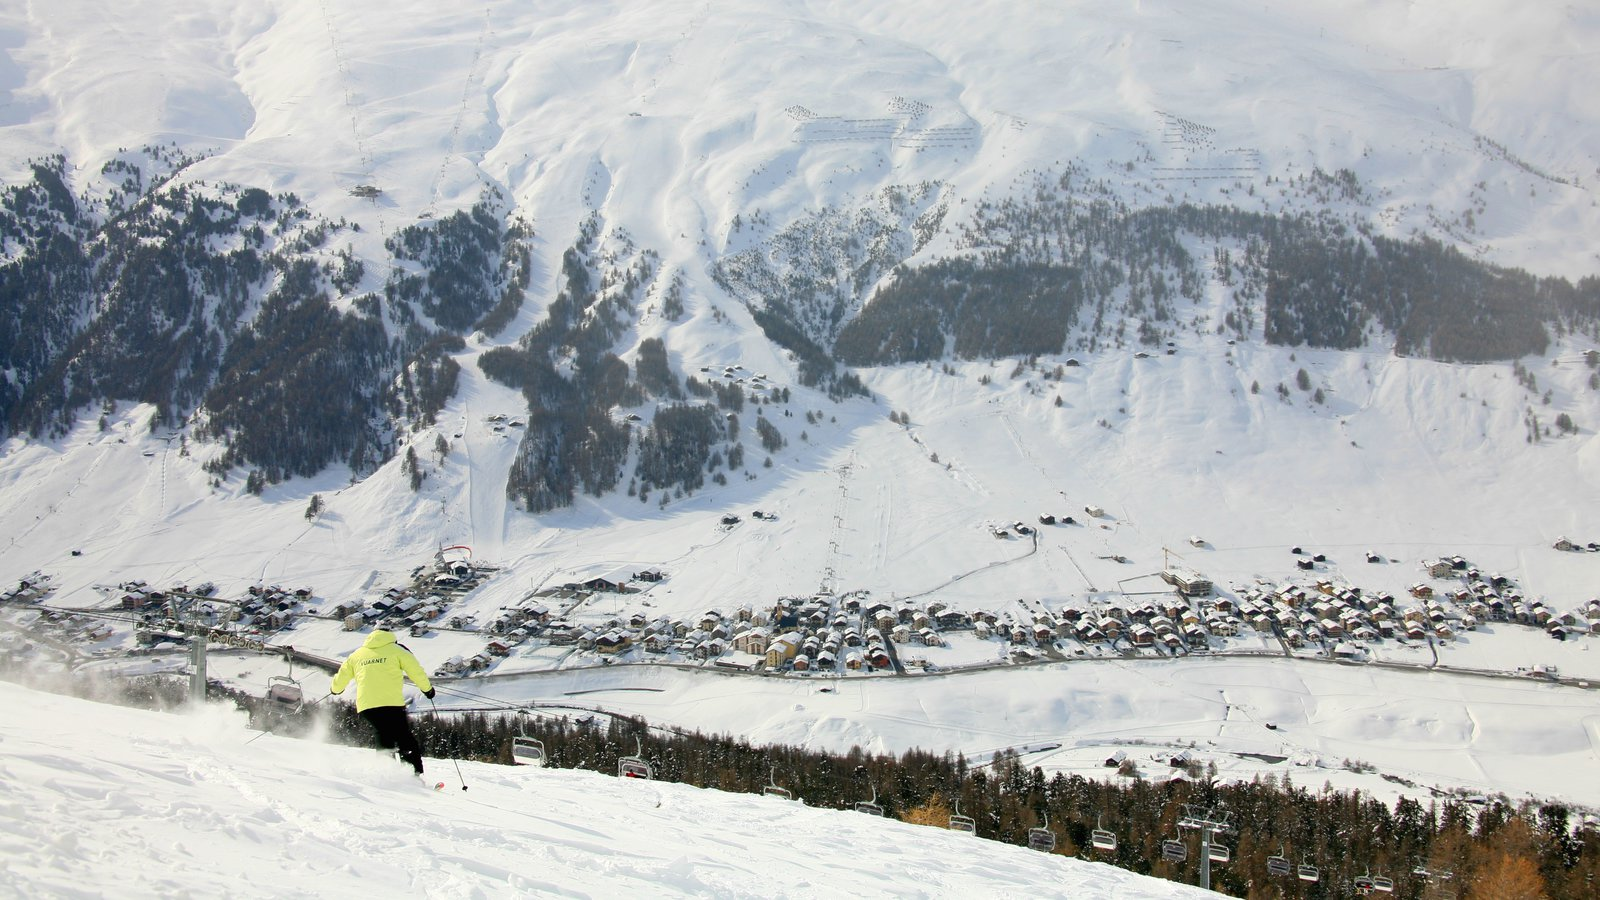 Livigno Ski Area showing tranquil scenes, mountains and snow skiing